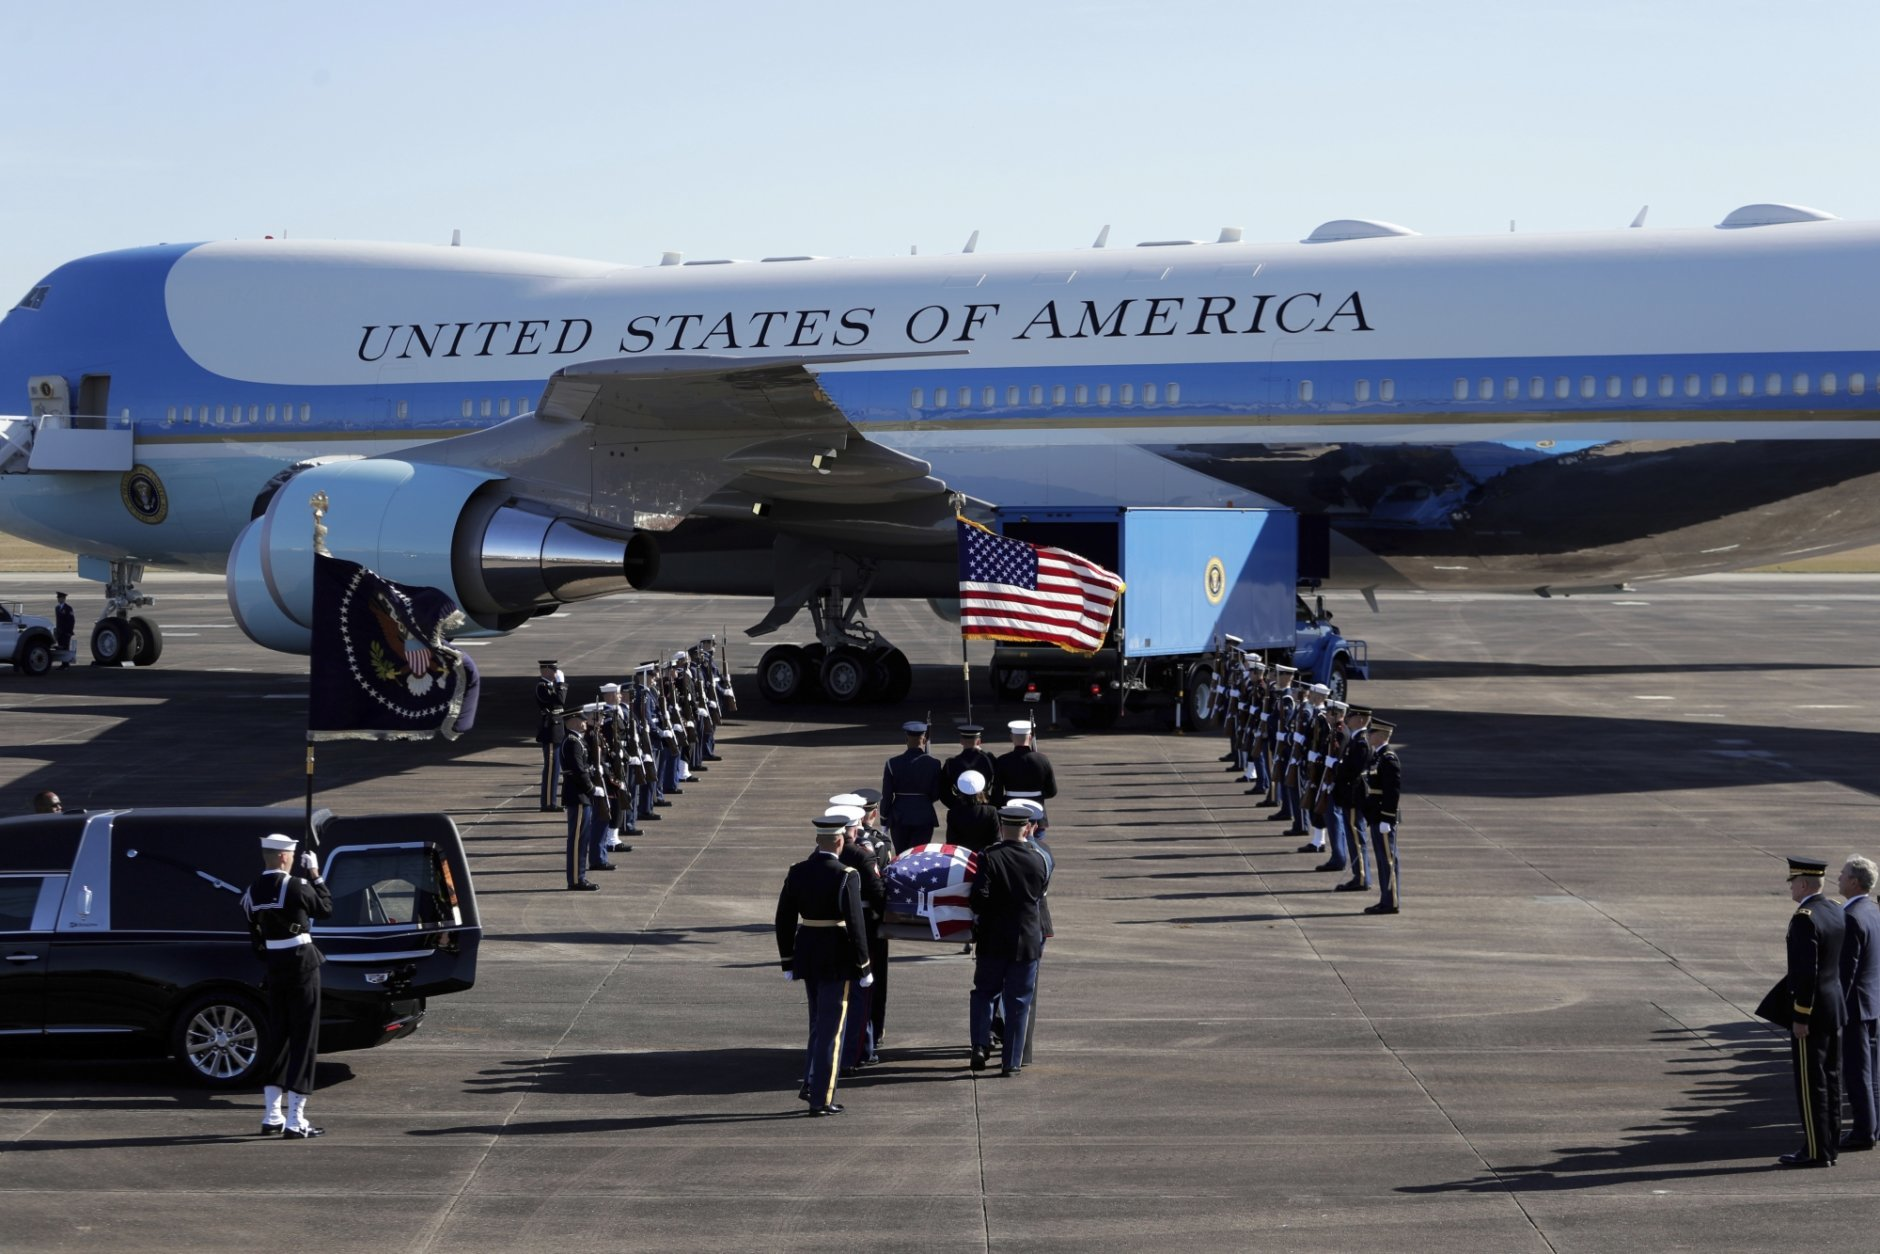 The flag-draped casket of former President George H.W. Bush is carried by a joint services military honor guard to Special Air Mission 41 at Ellington Field during a departure ceremony Monday, Dec. 3, 2018, in Houston. (AP Photo/Eric Gay)